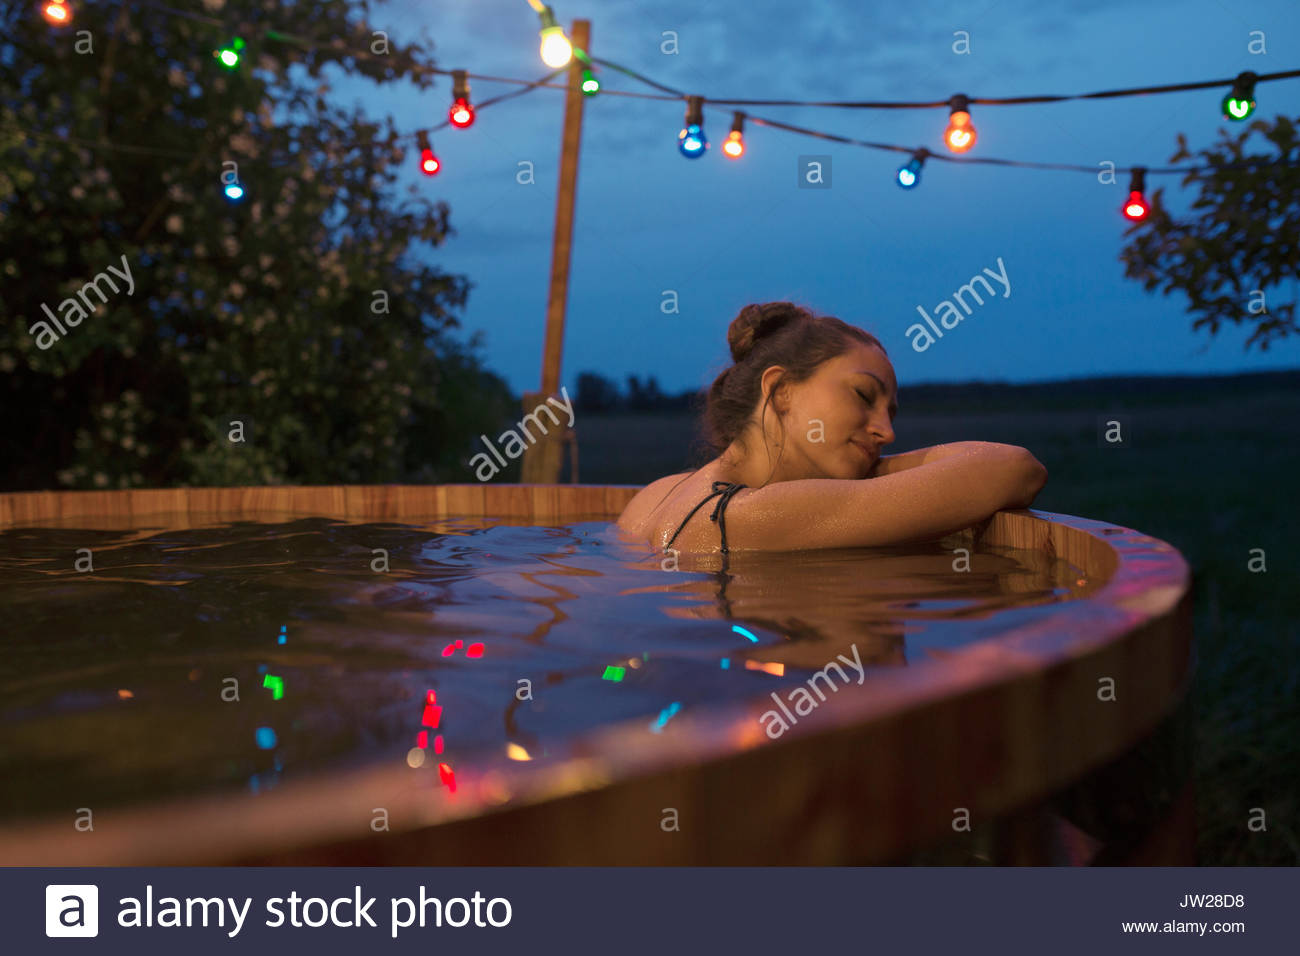 Serene young woman relaxing, soaking in hot tub under string lights ...